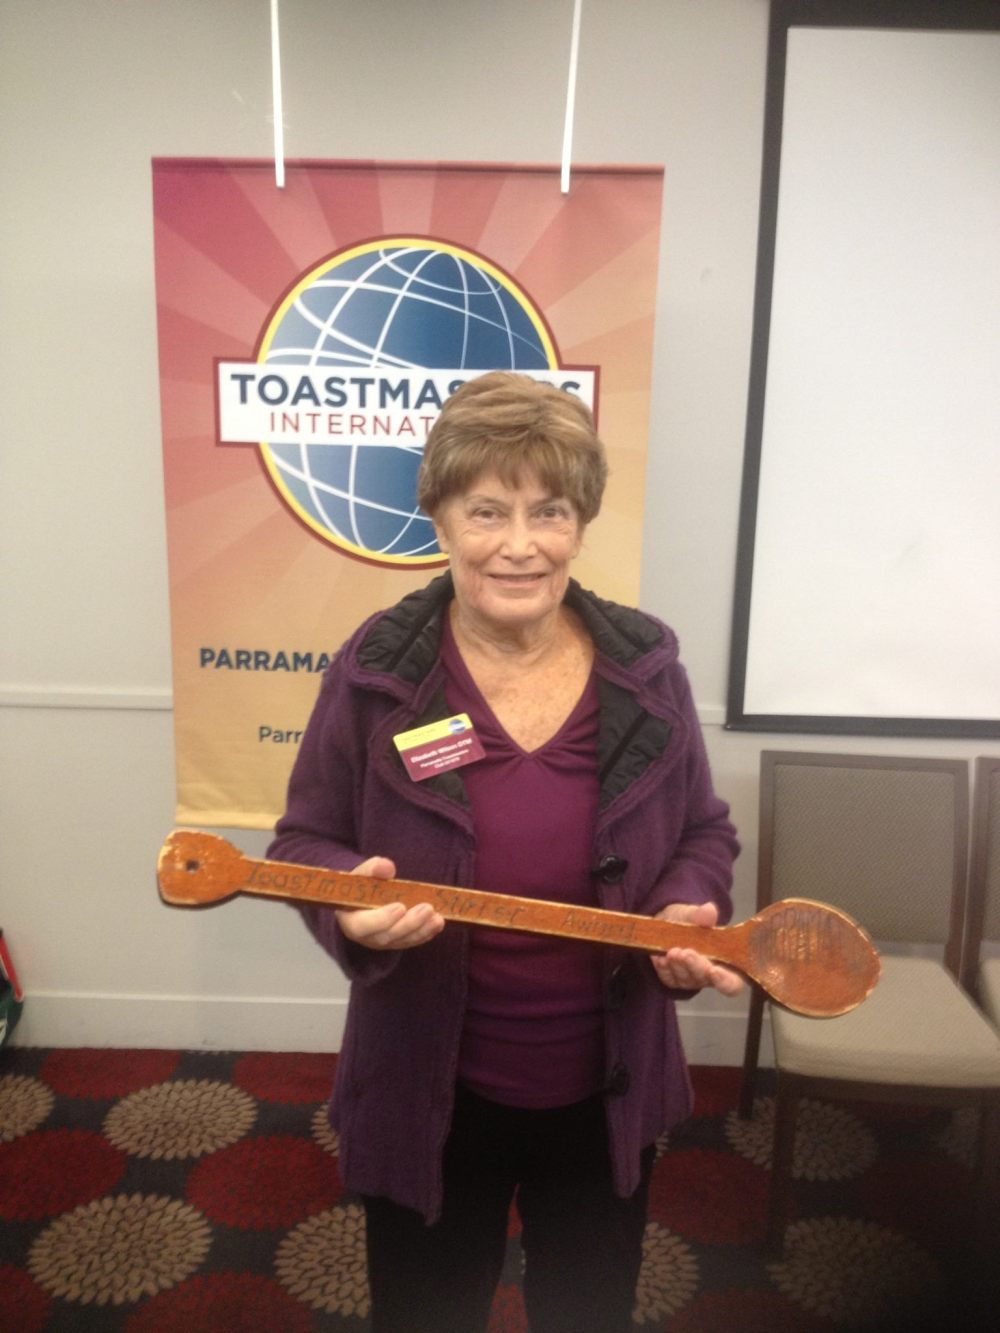 Elizabeth Wilson stirrer spoon award in 2014